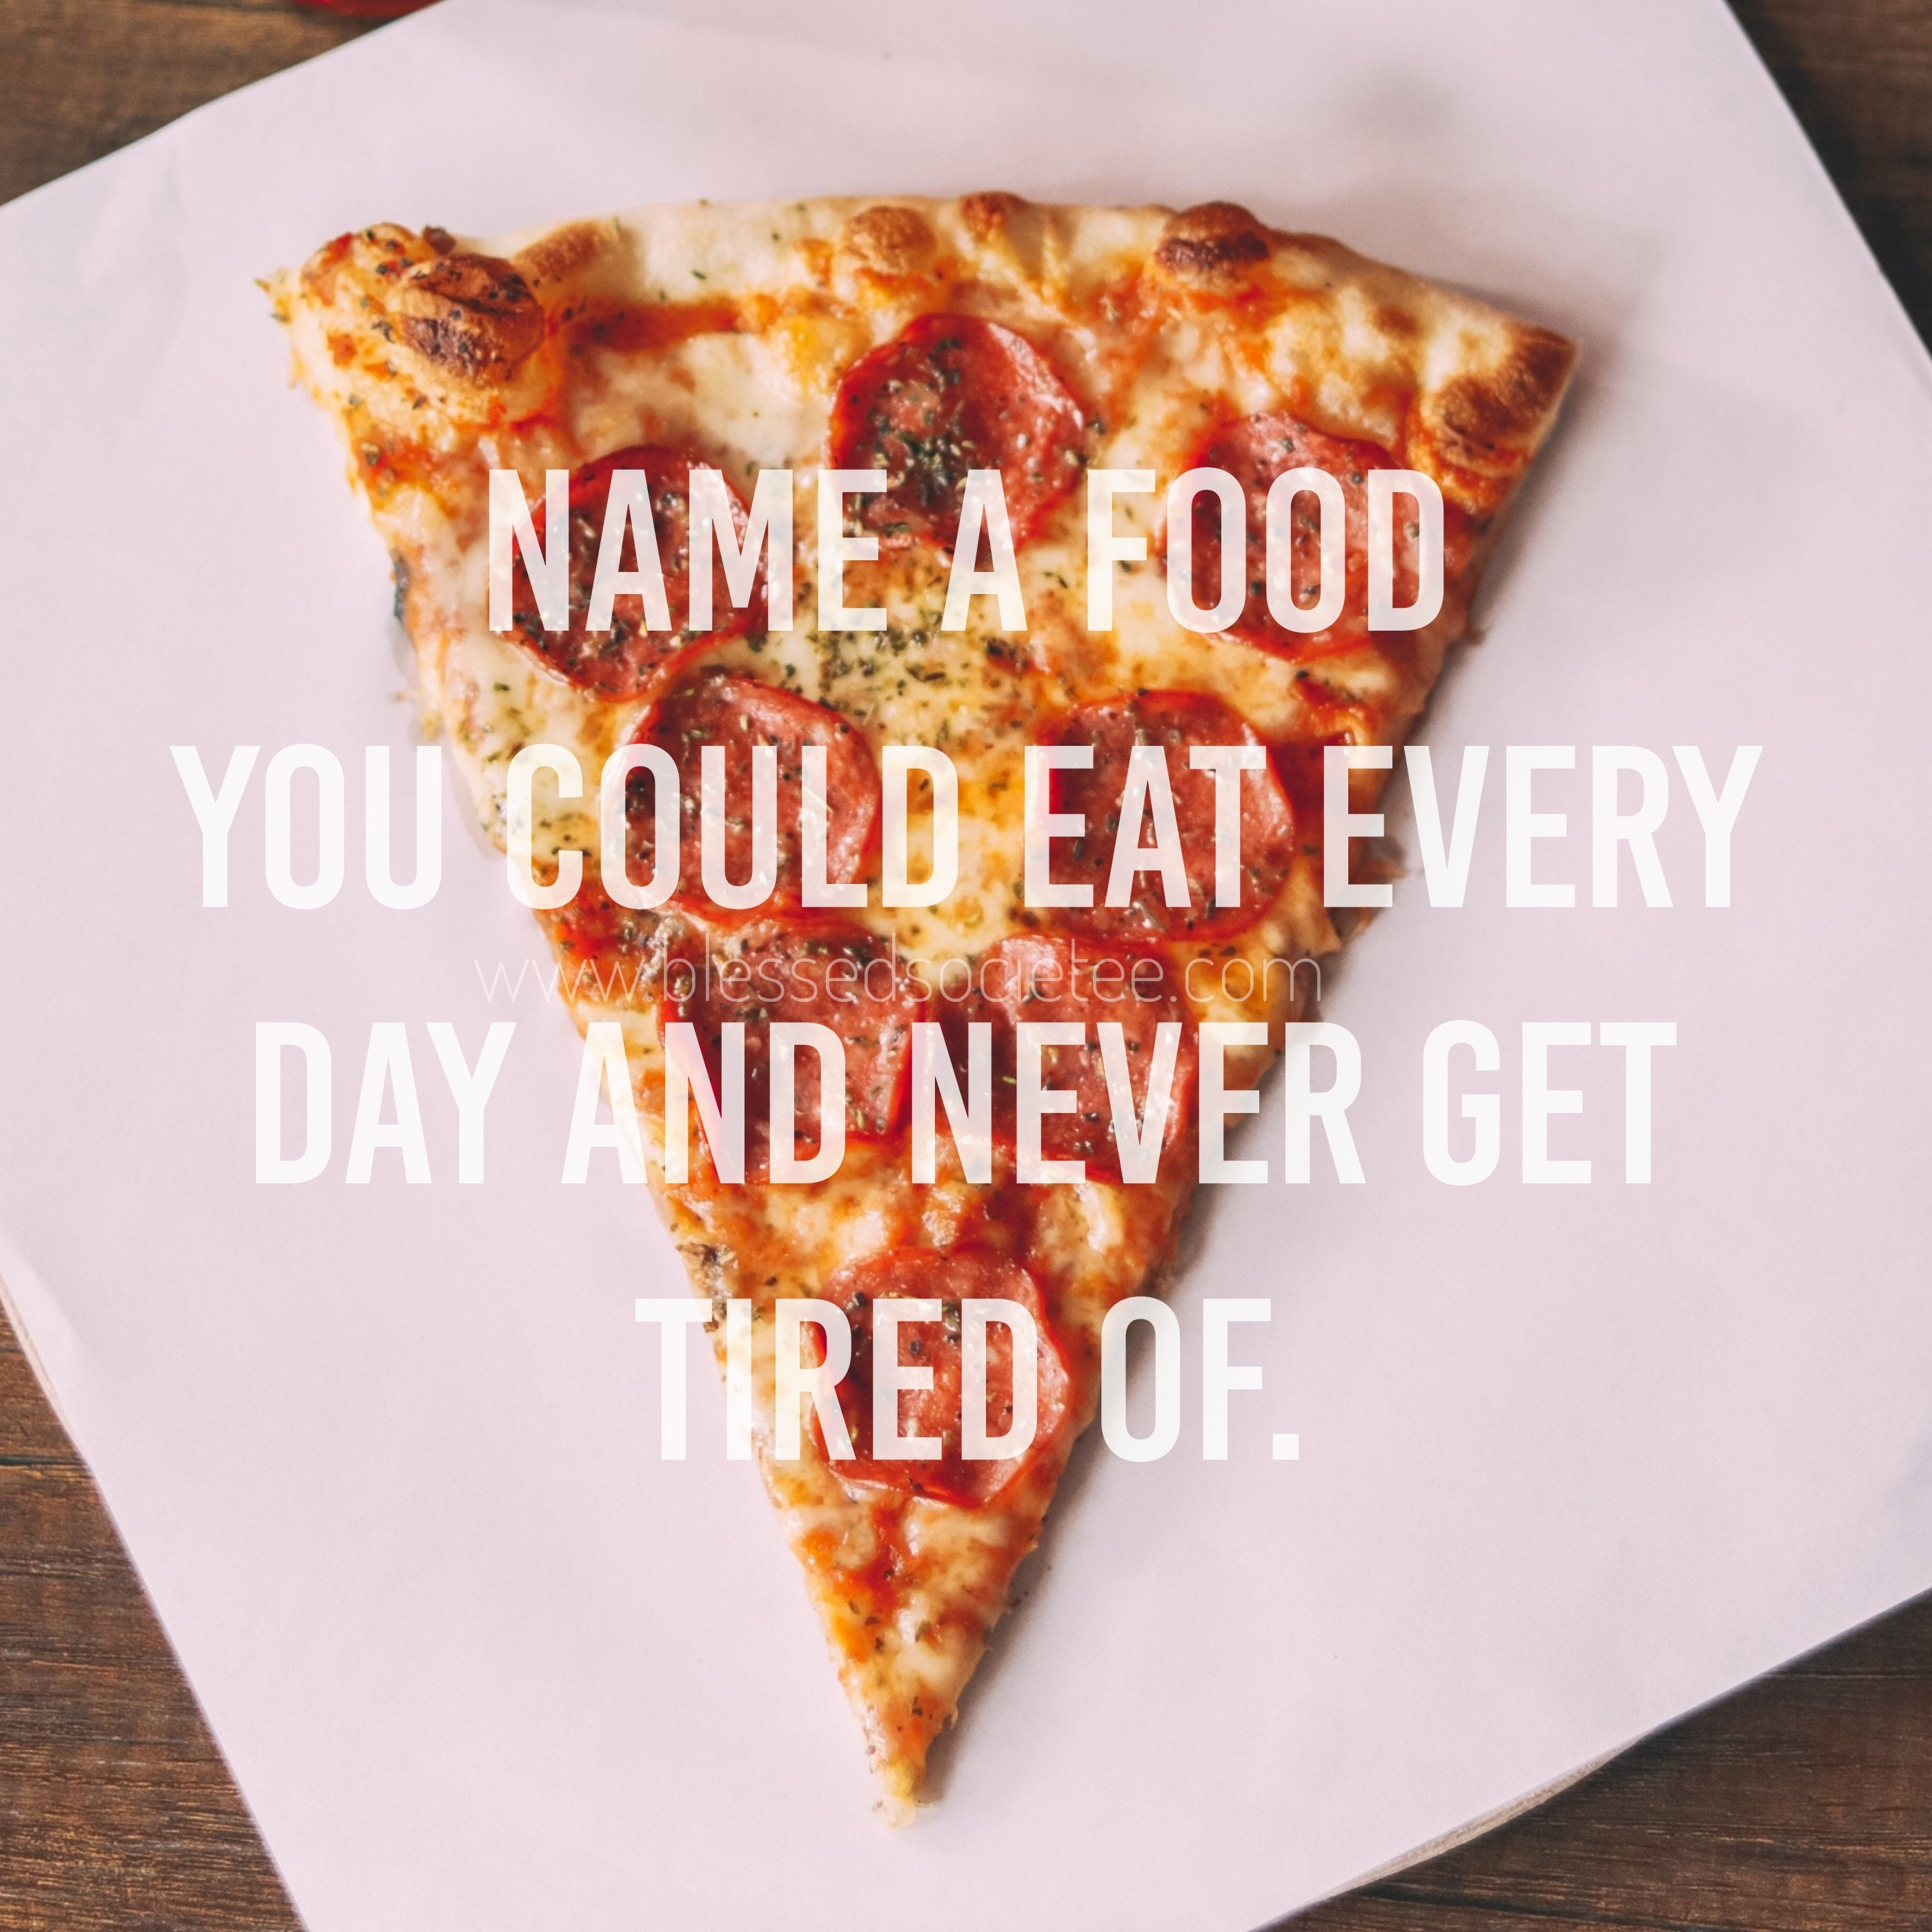 Name a food you could eat every day...